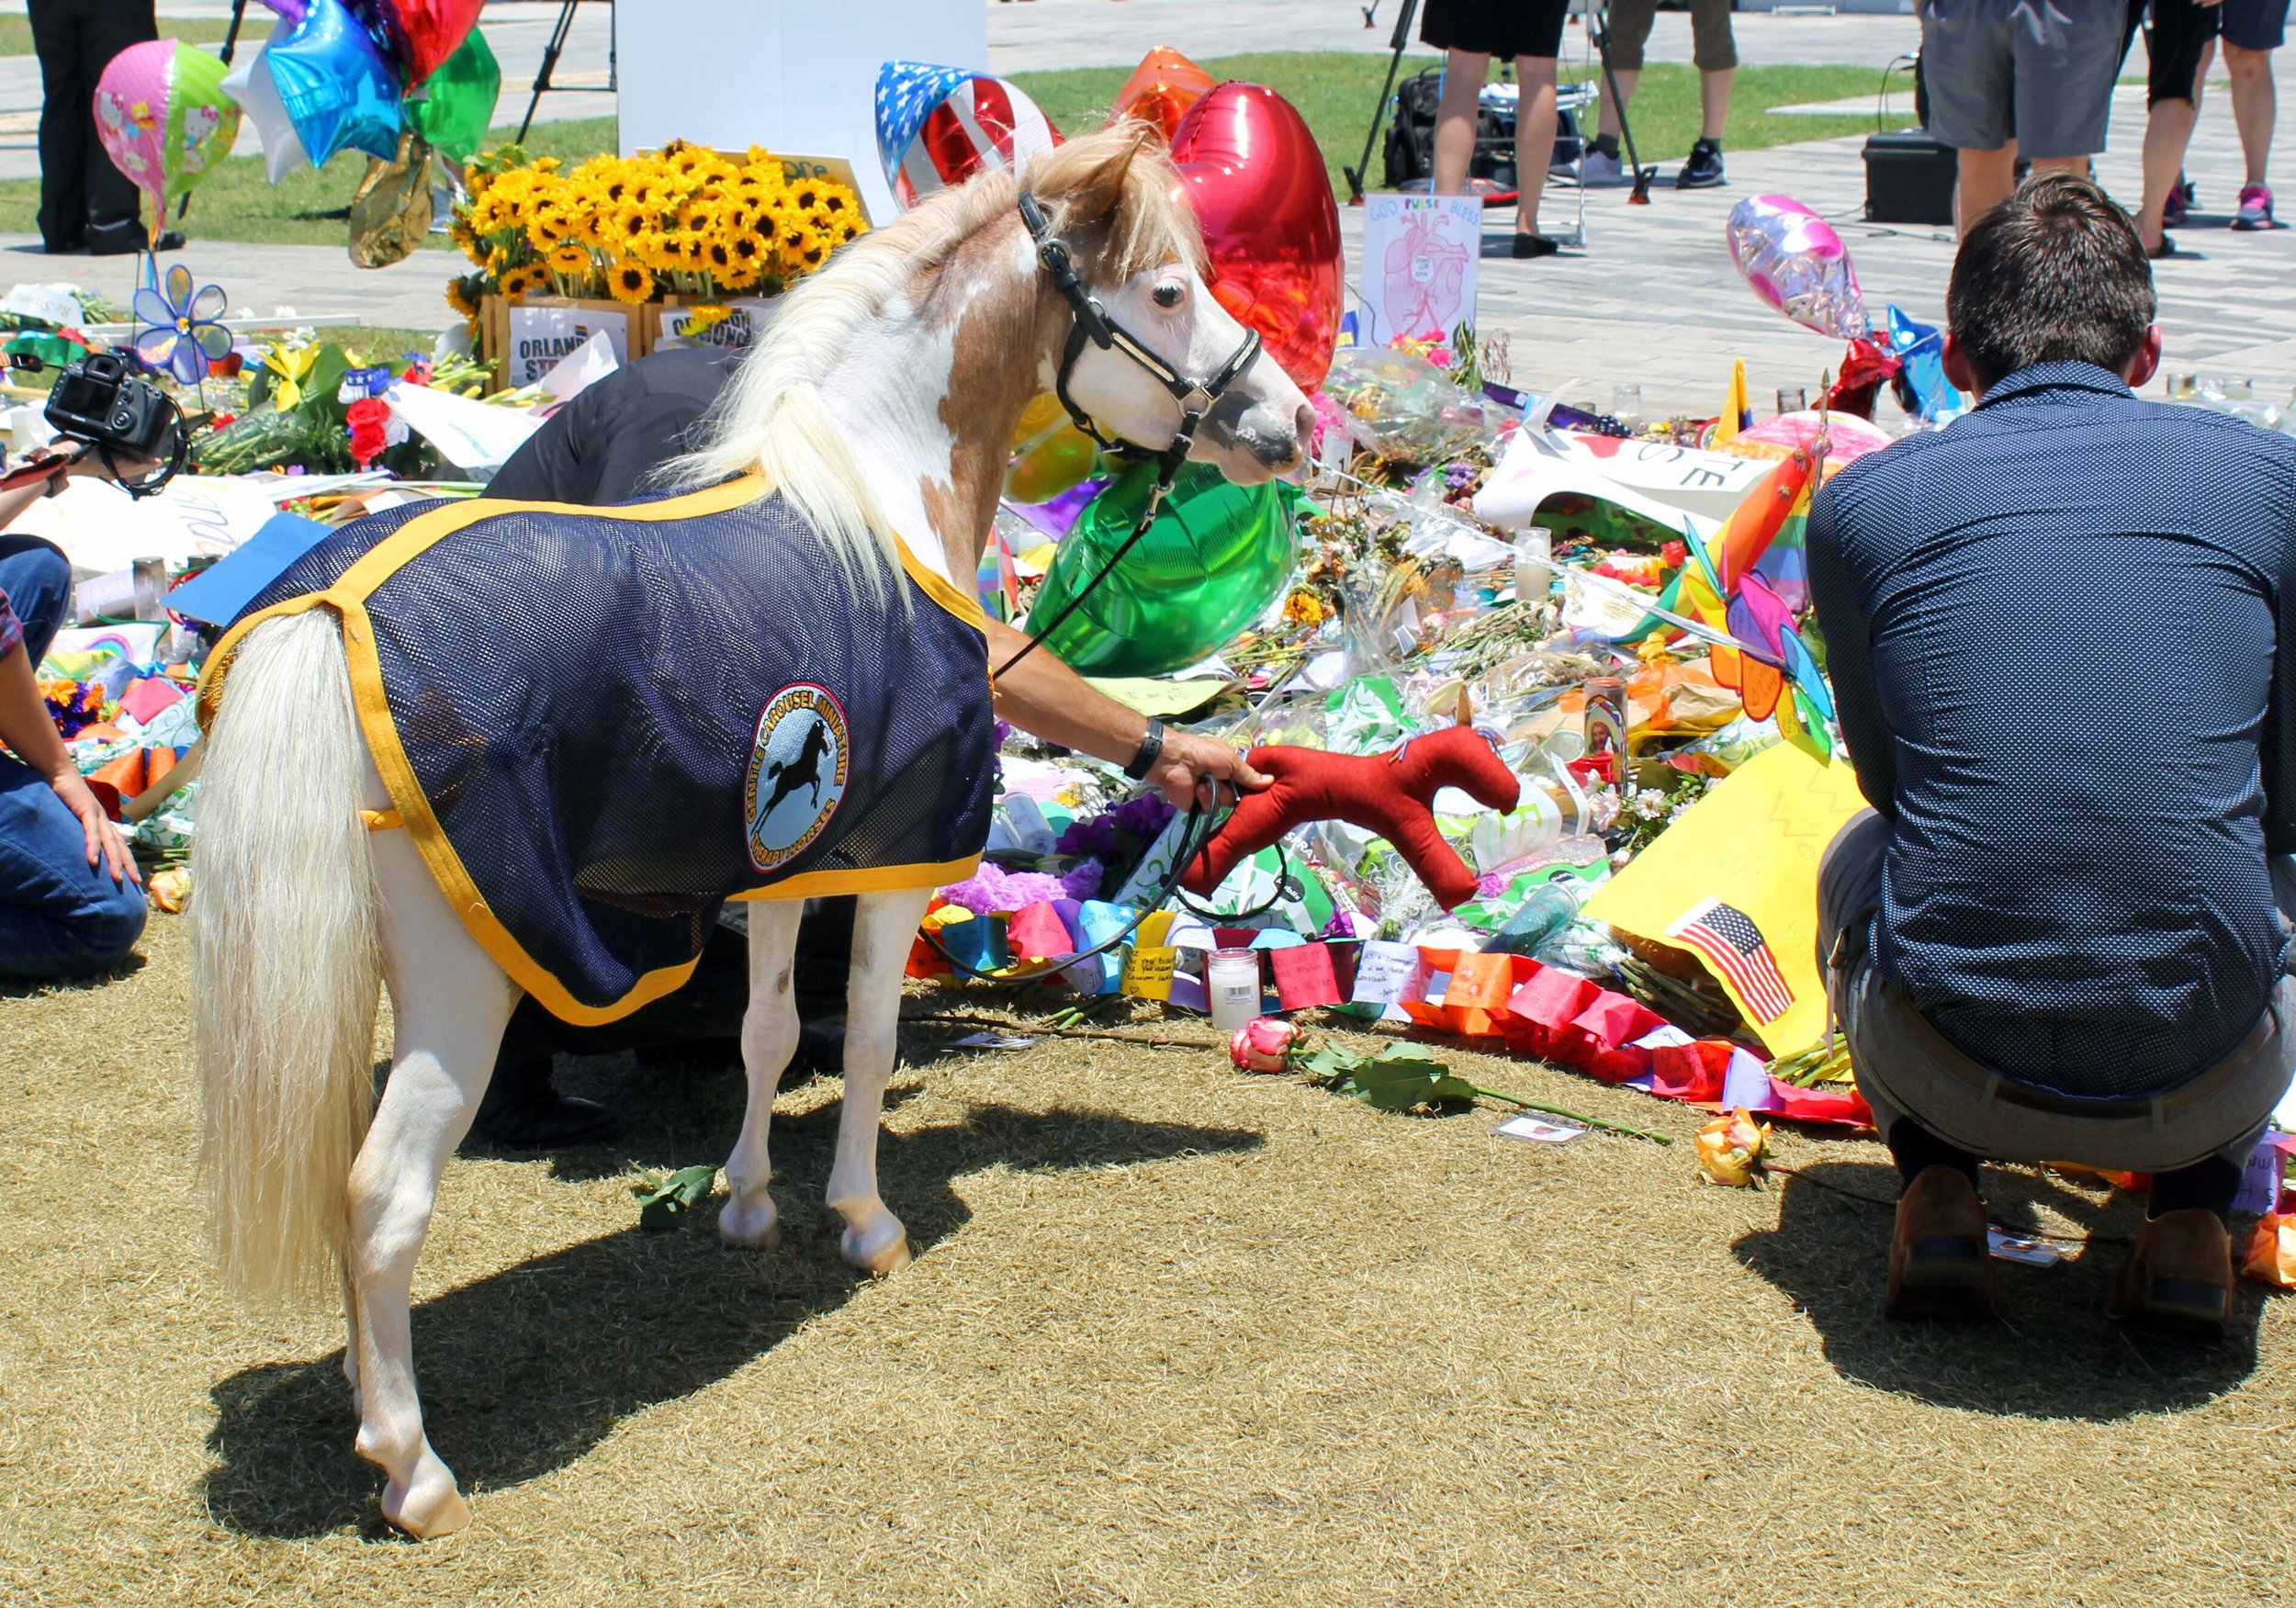 Therapy horse Catherine at the Pulse nightclub memorial in Orlando, FL